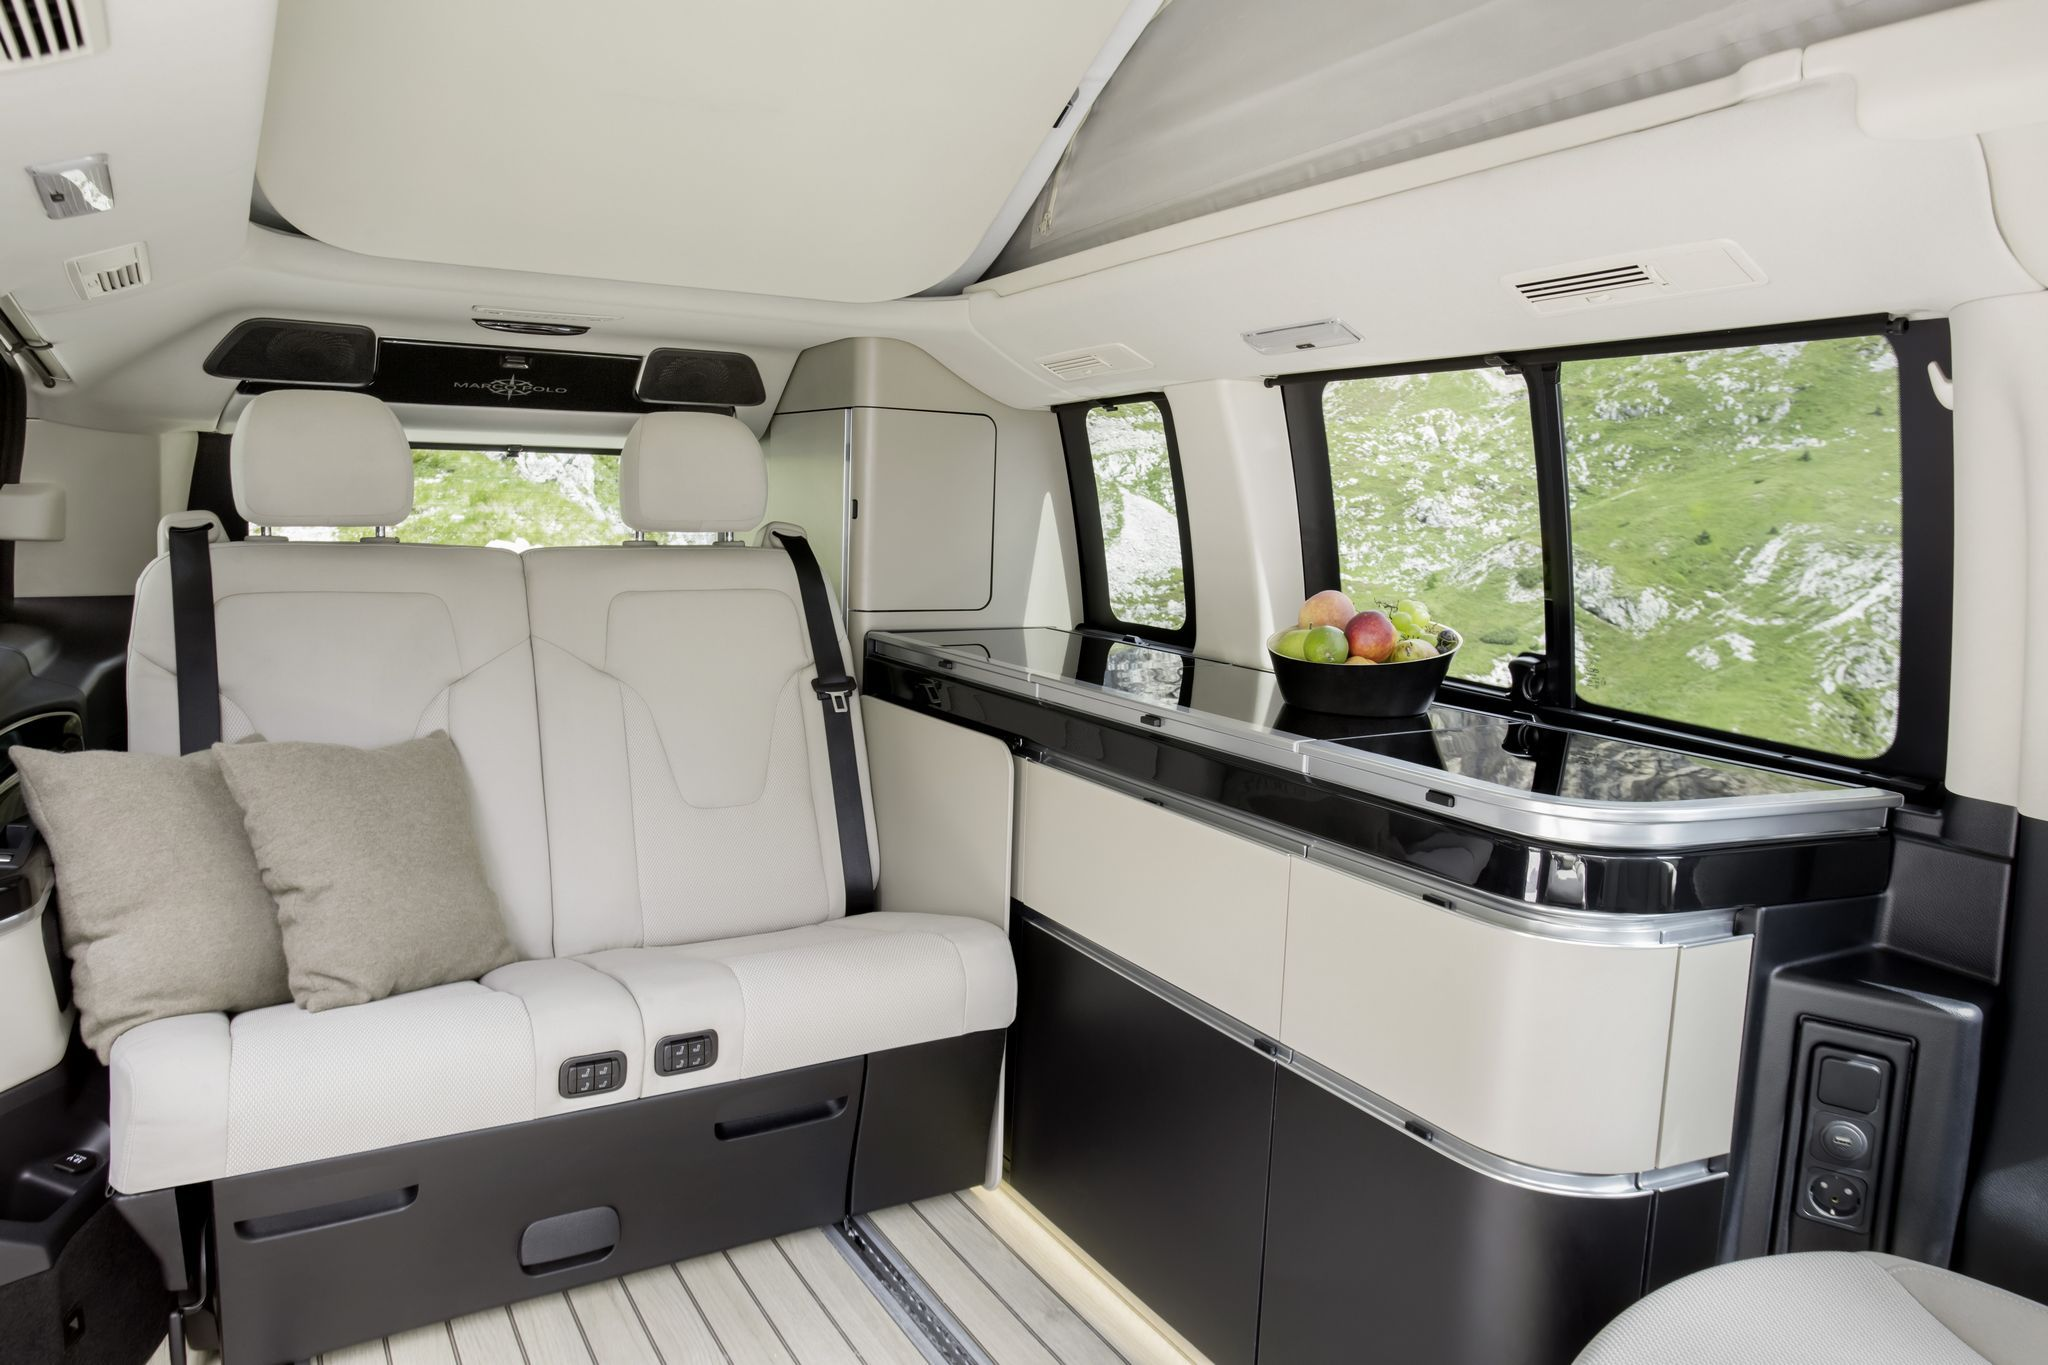 mercedes vito marco polo segunda mano buscar con google. Black Bedroom Furniture Sets. Home Design Ideas